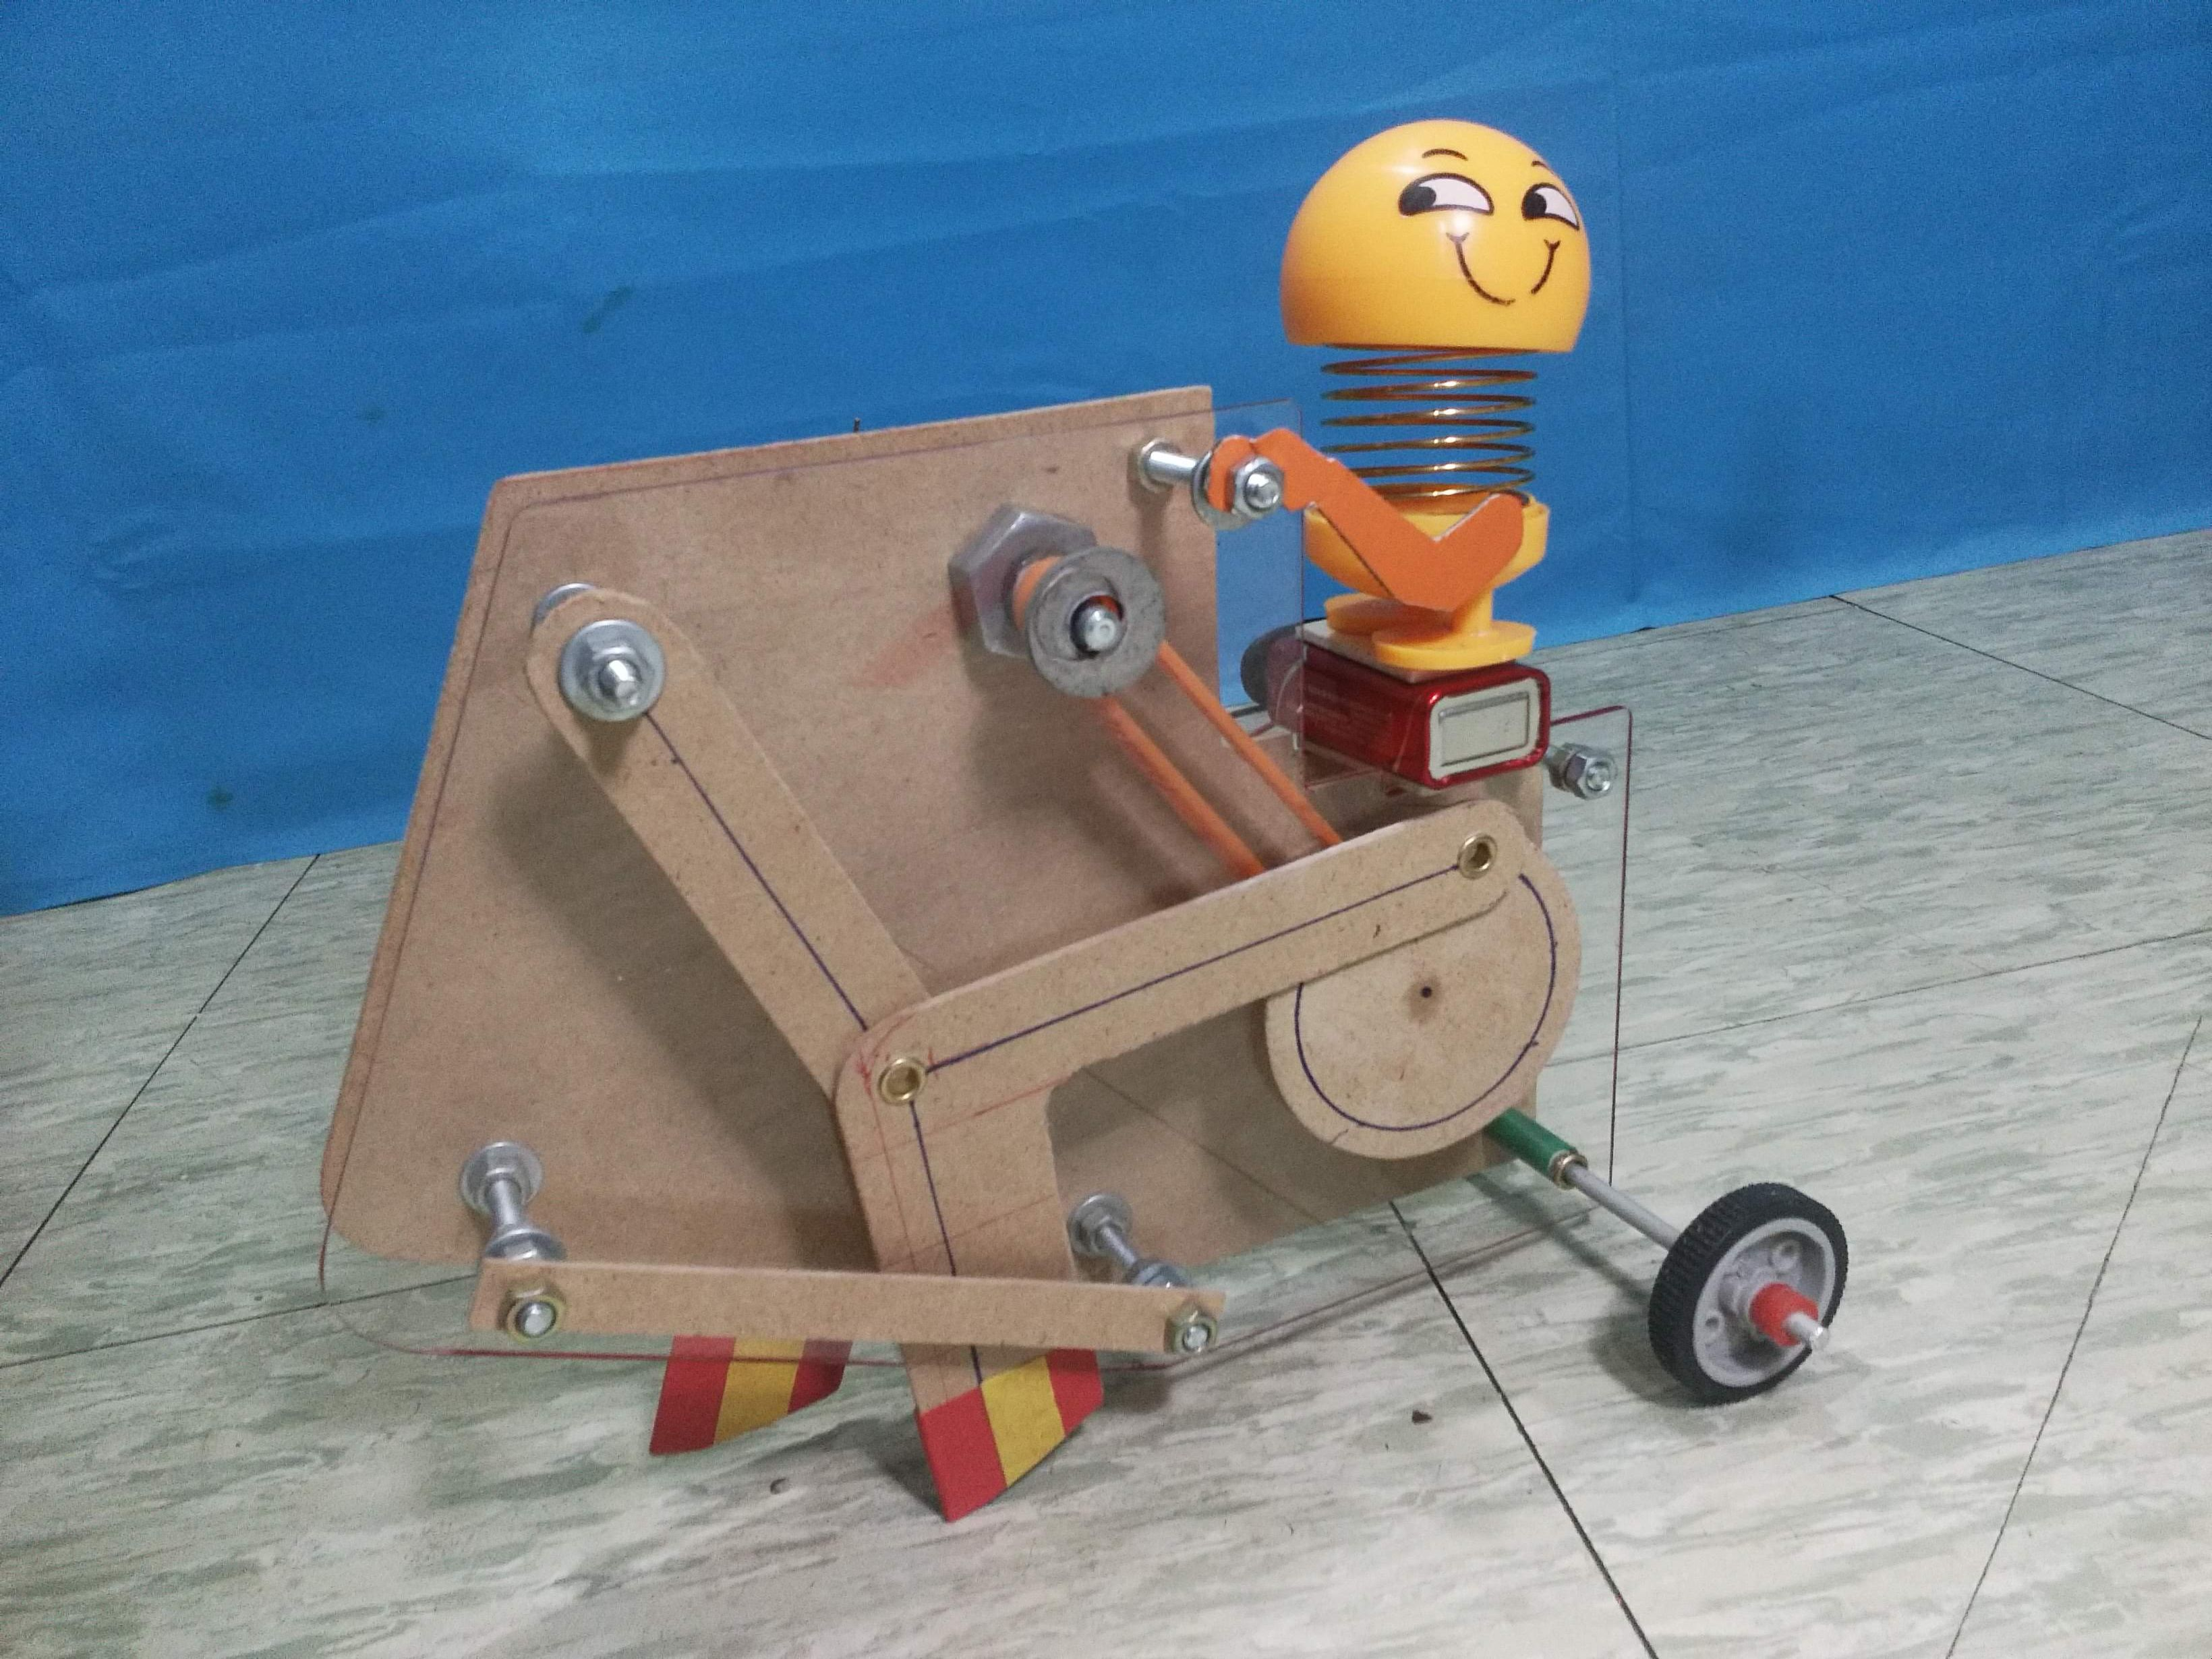 Diy Walking Machine Robot Toy How To Make In